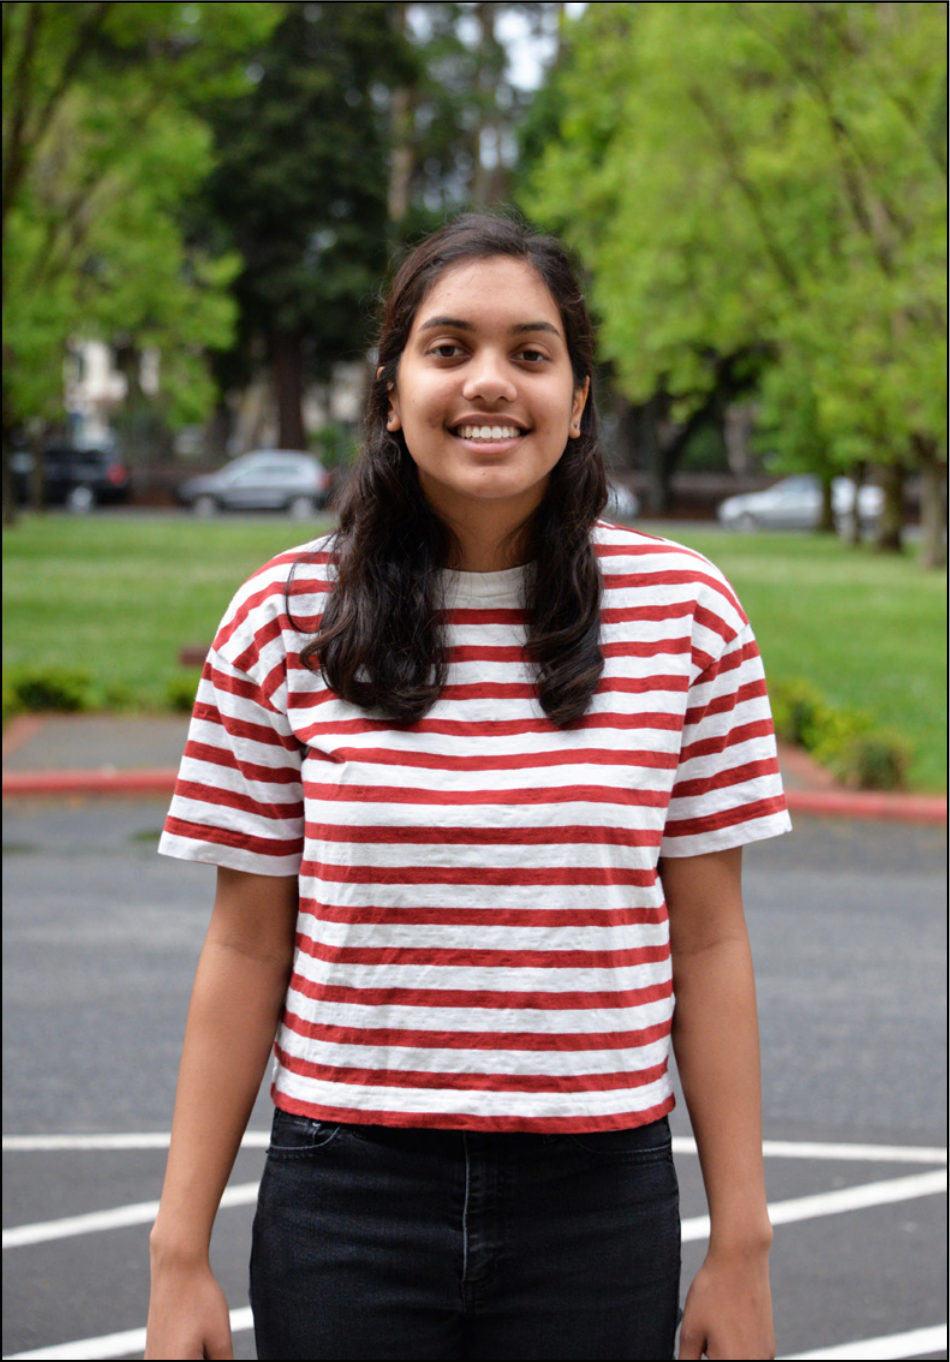 Priya Patel will spend time with friends, relax, and prepare mentally for college during the summer.